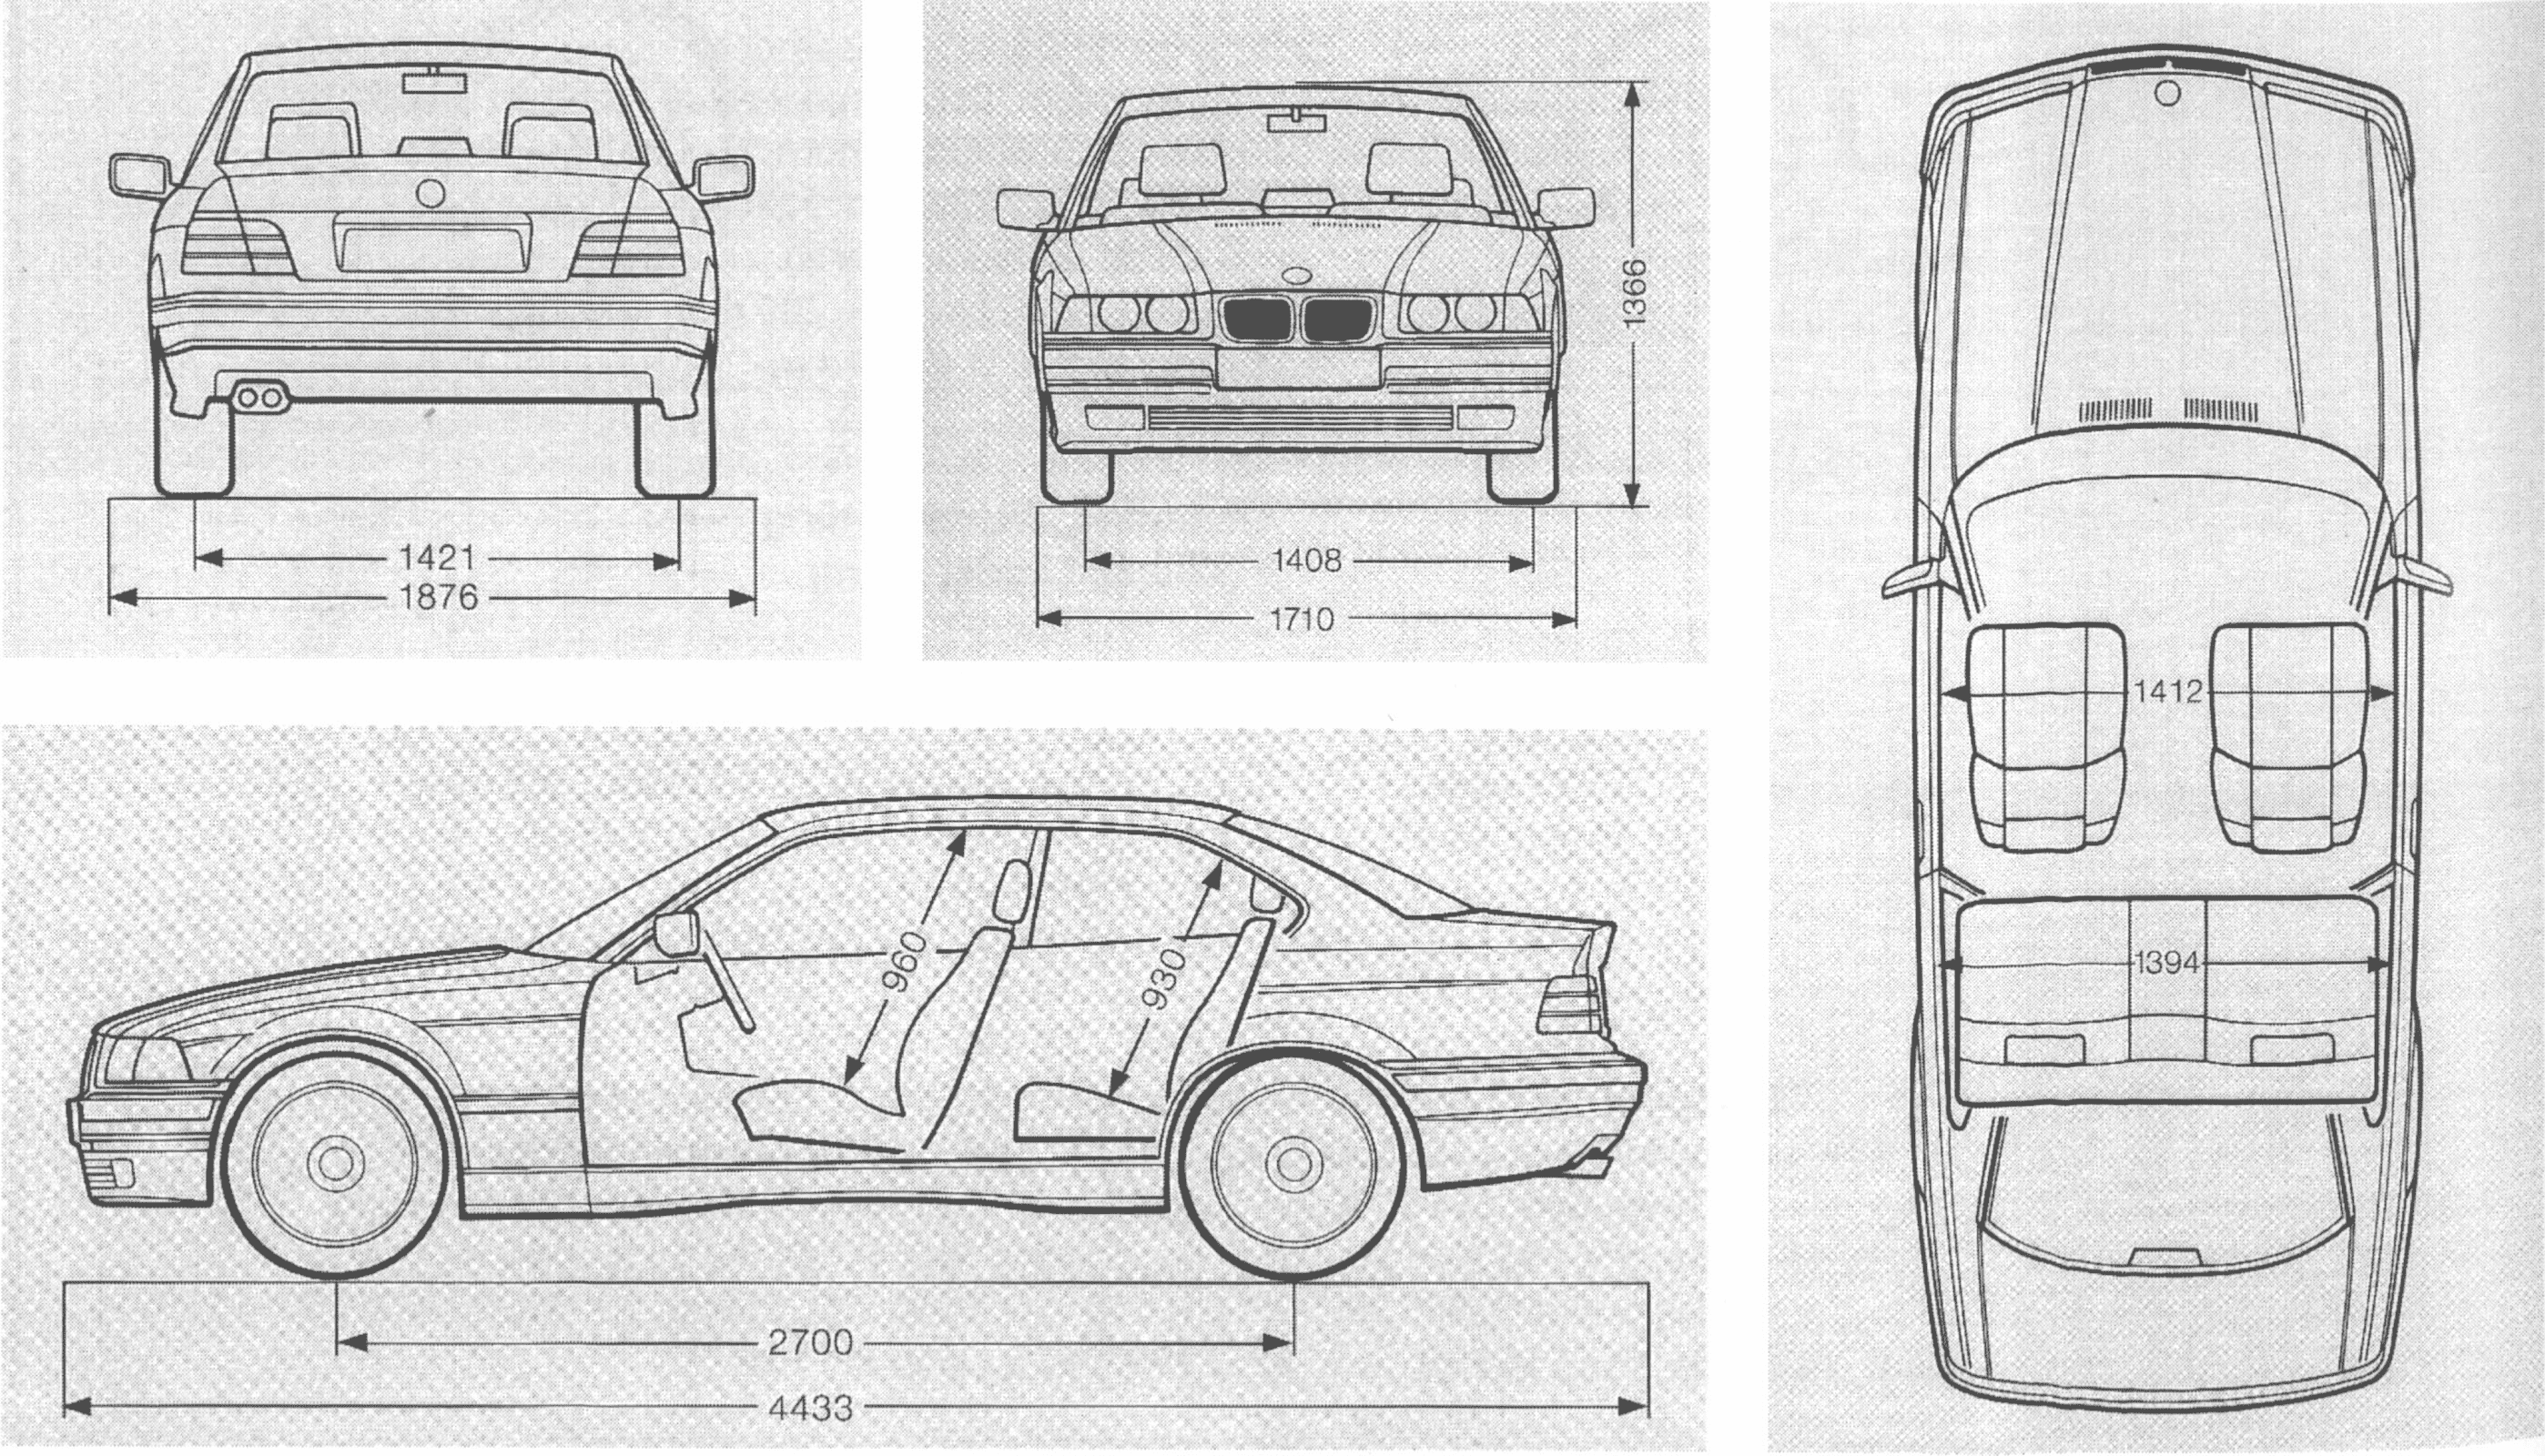 Dimensions Of Bmw E36 Body And Parts Dimension Tables